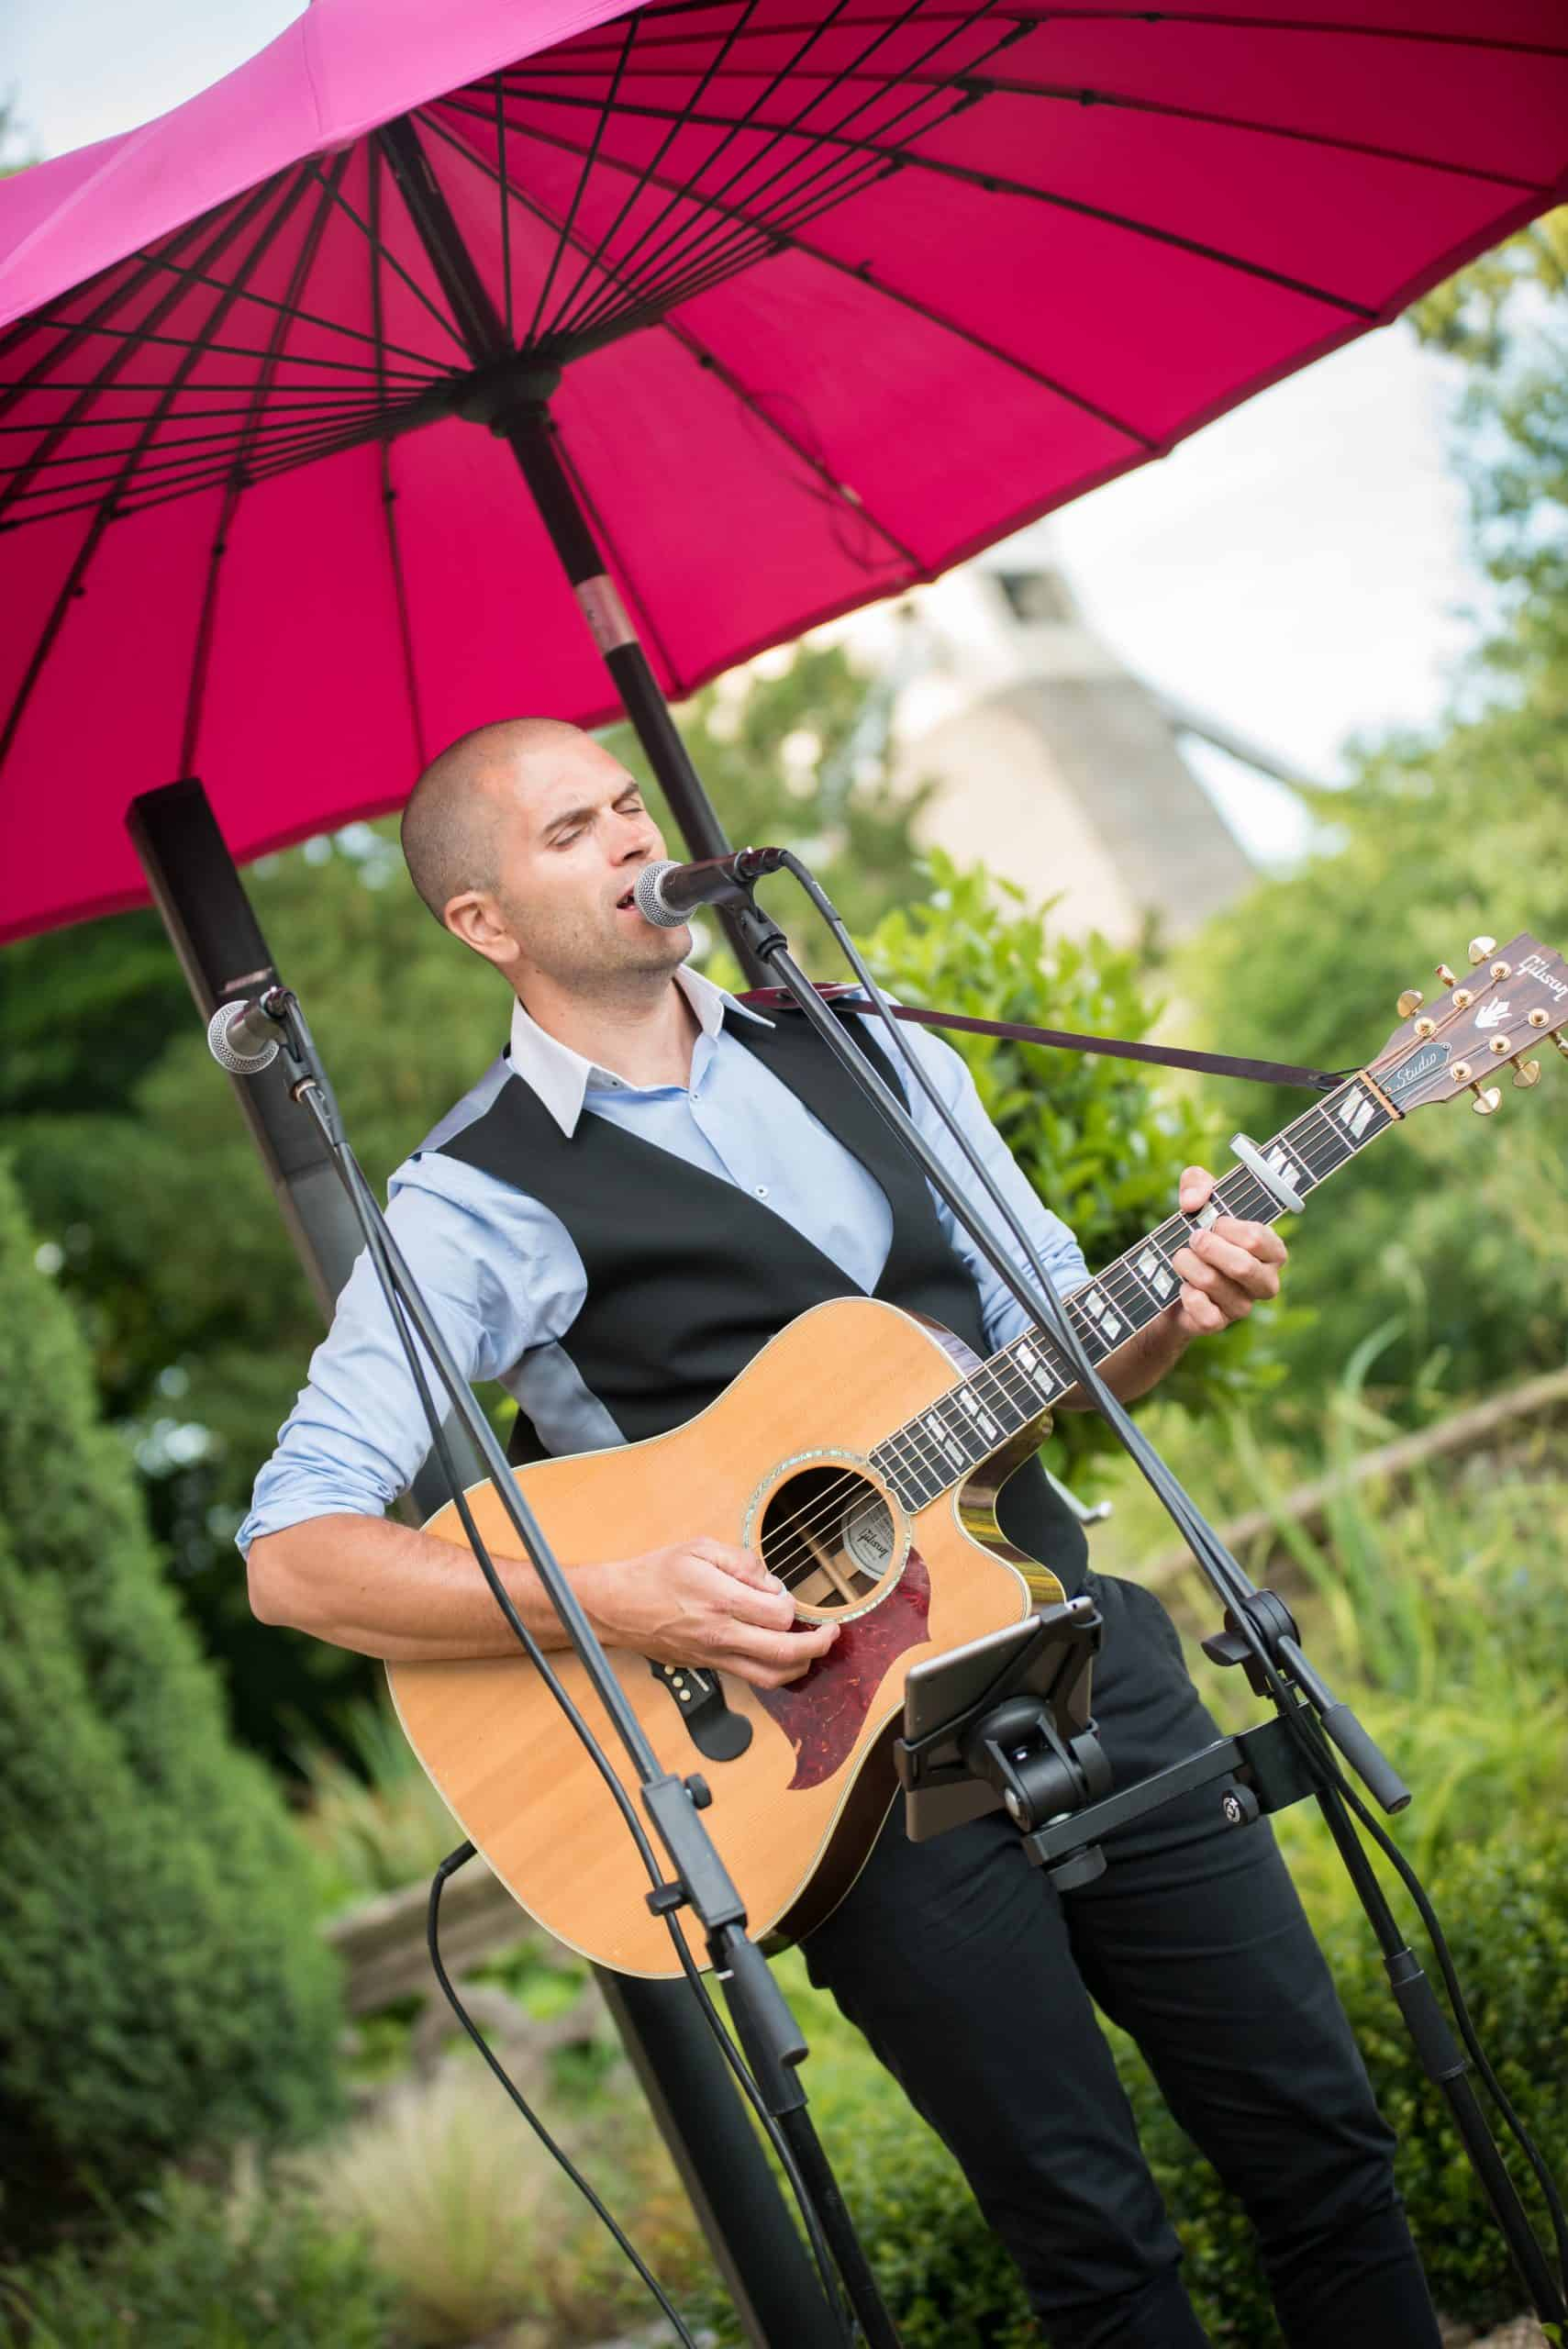 live entertainment at private party at home event planning by Alastair Currie Events